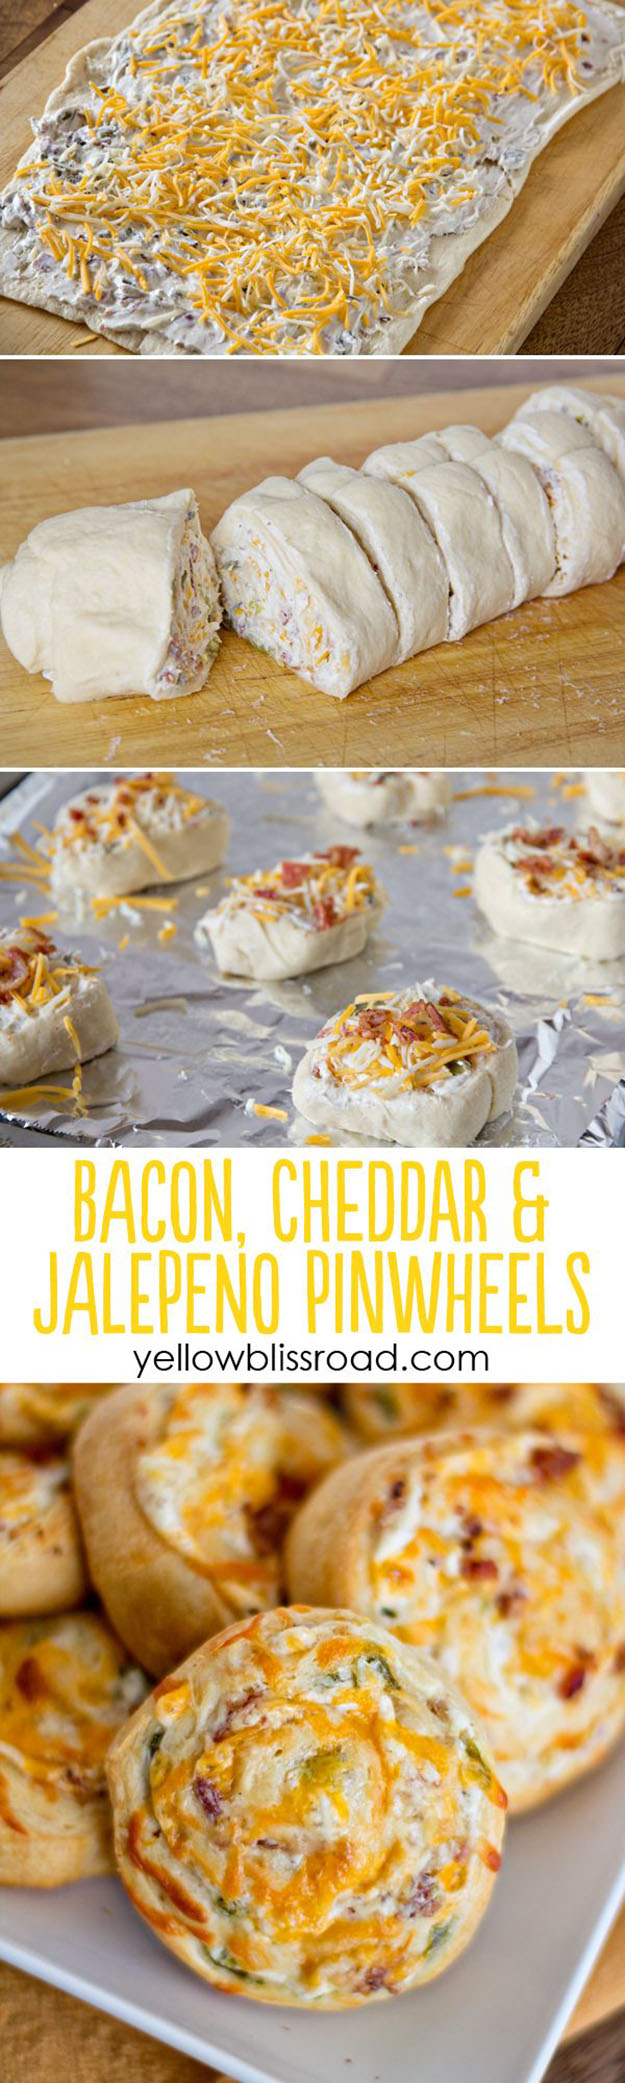 Cheap Party Food Ideas |Easy DIY Recipe for Bacon & Cheese Pinwheels | DIY Projects and Crafts by DIY JOY #appetizers #partyfood #recipes